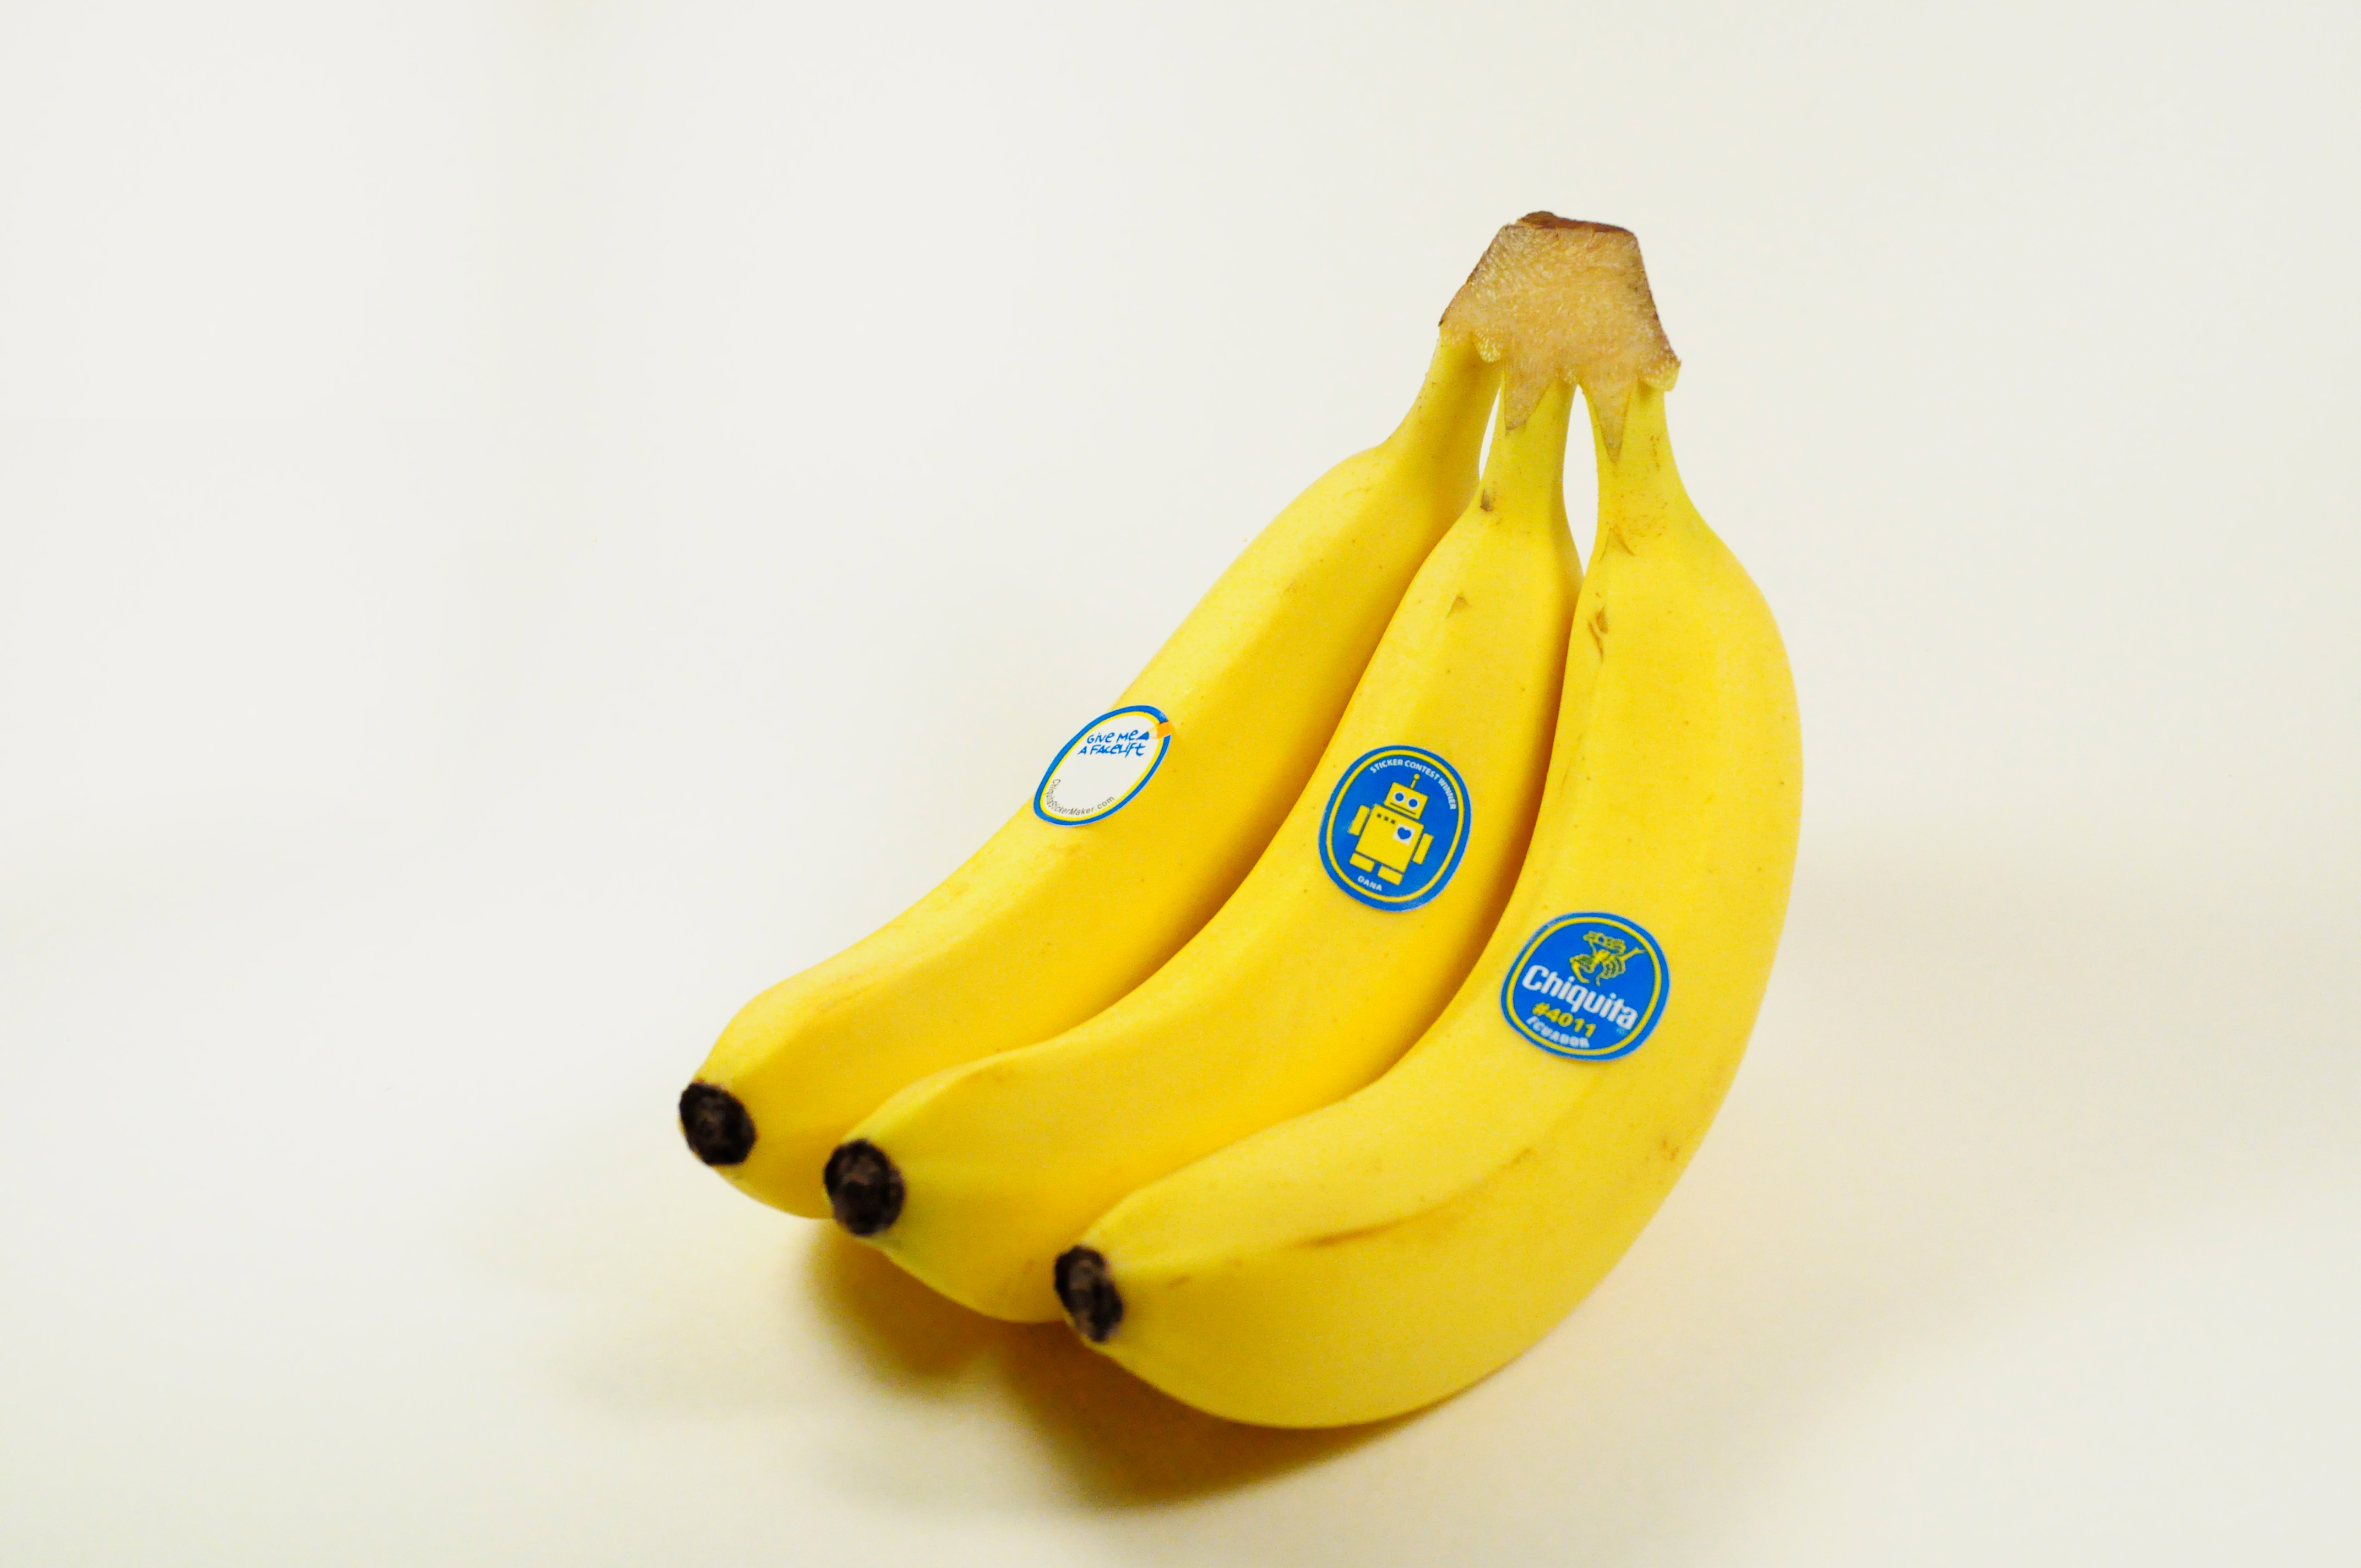 Chiquita Banana Sticker